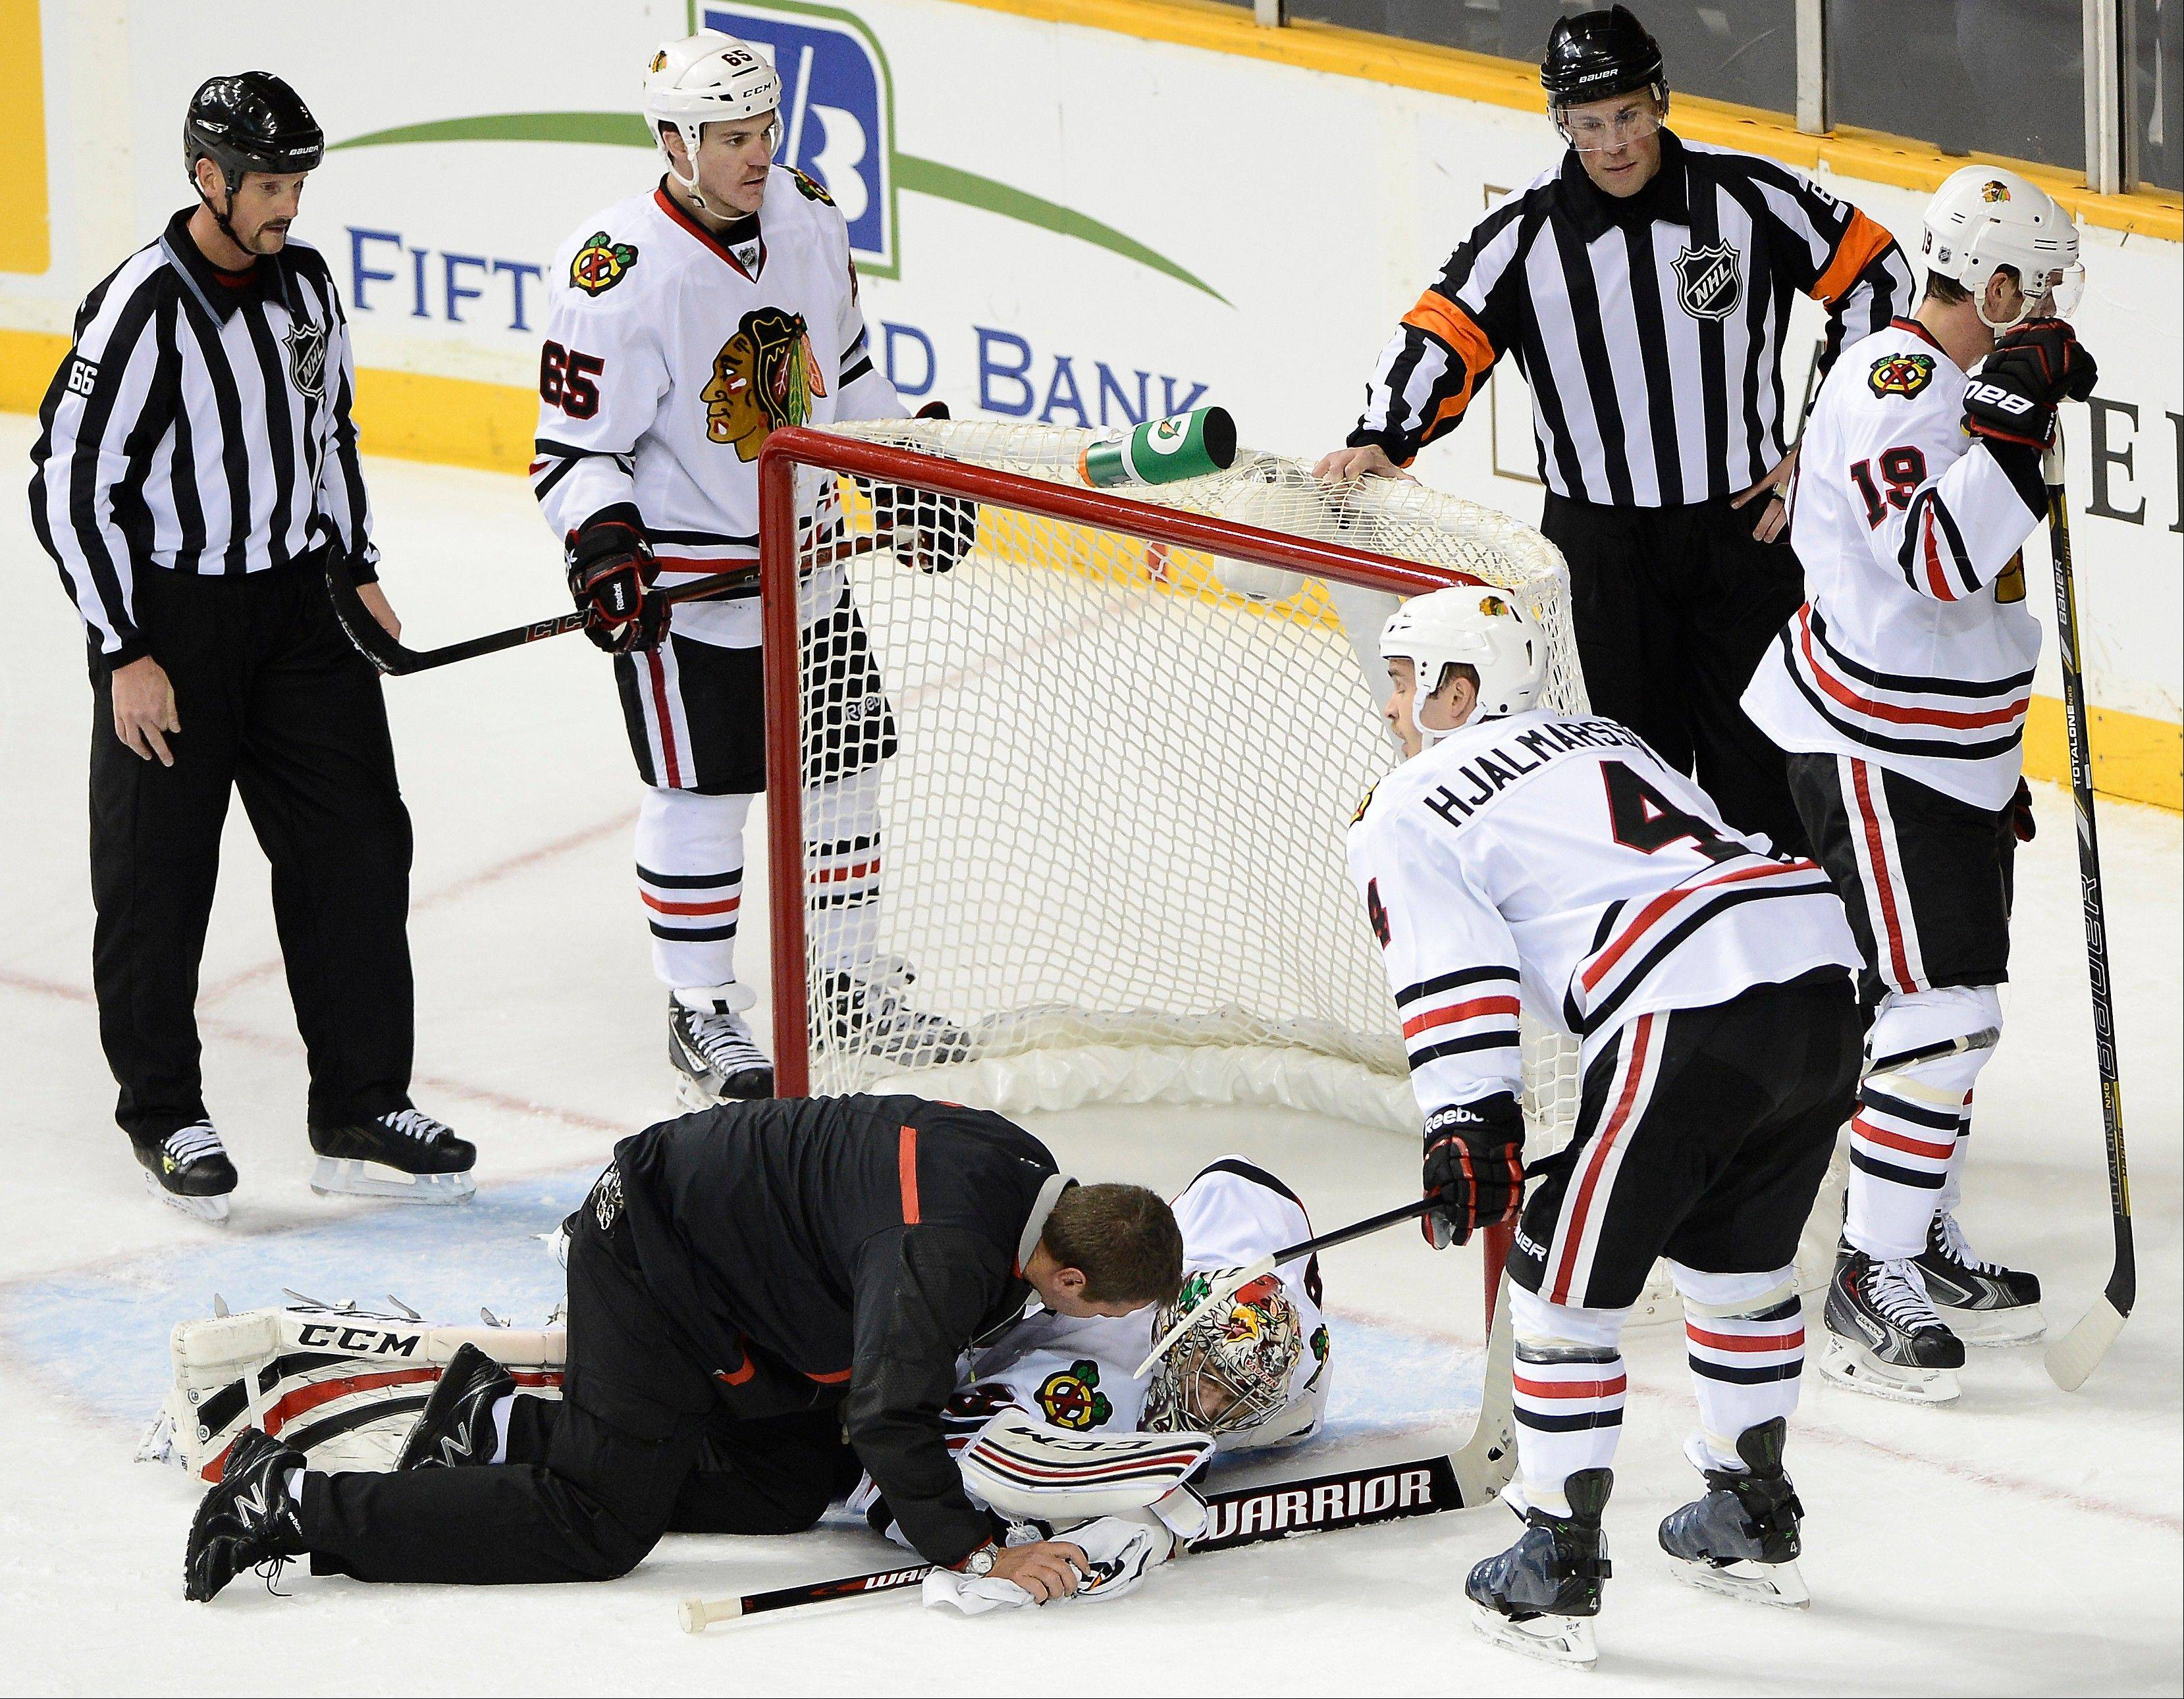 Tough night all around for Blackhawks